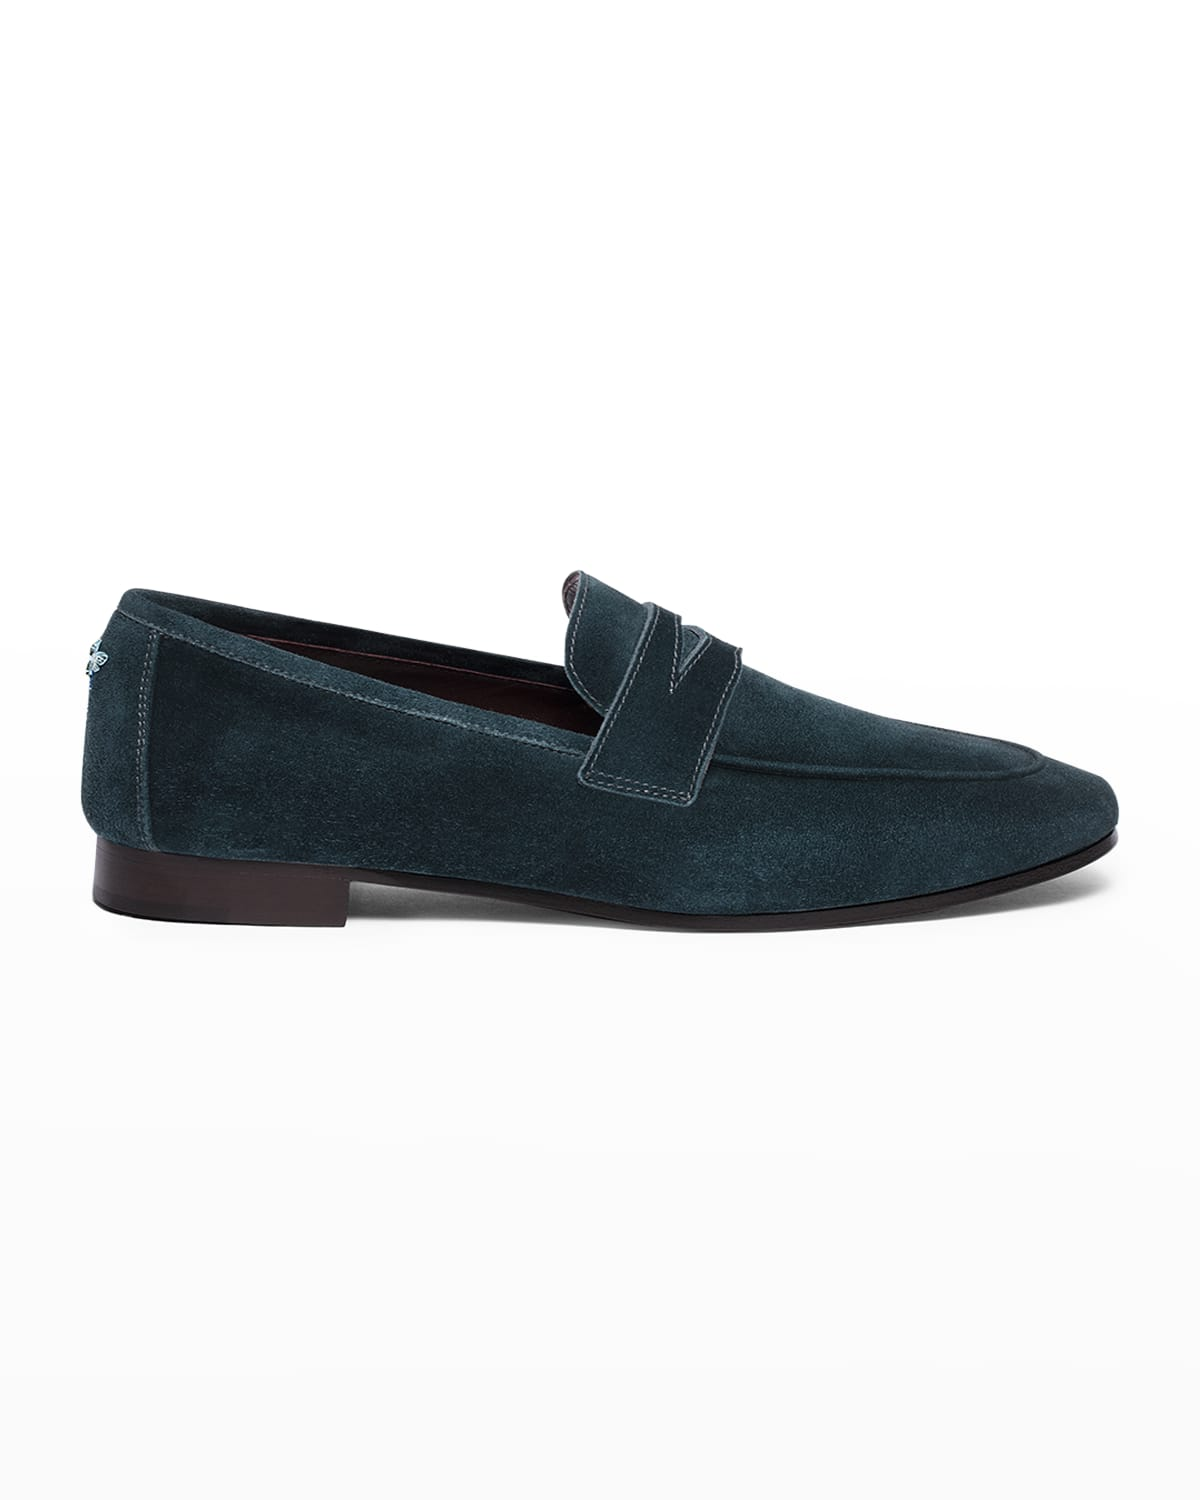 Suede Slip-On Penny Loafers